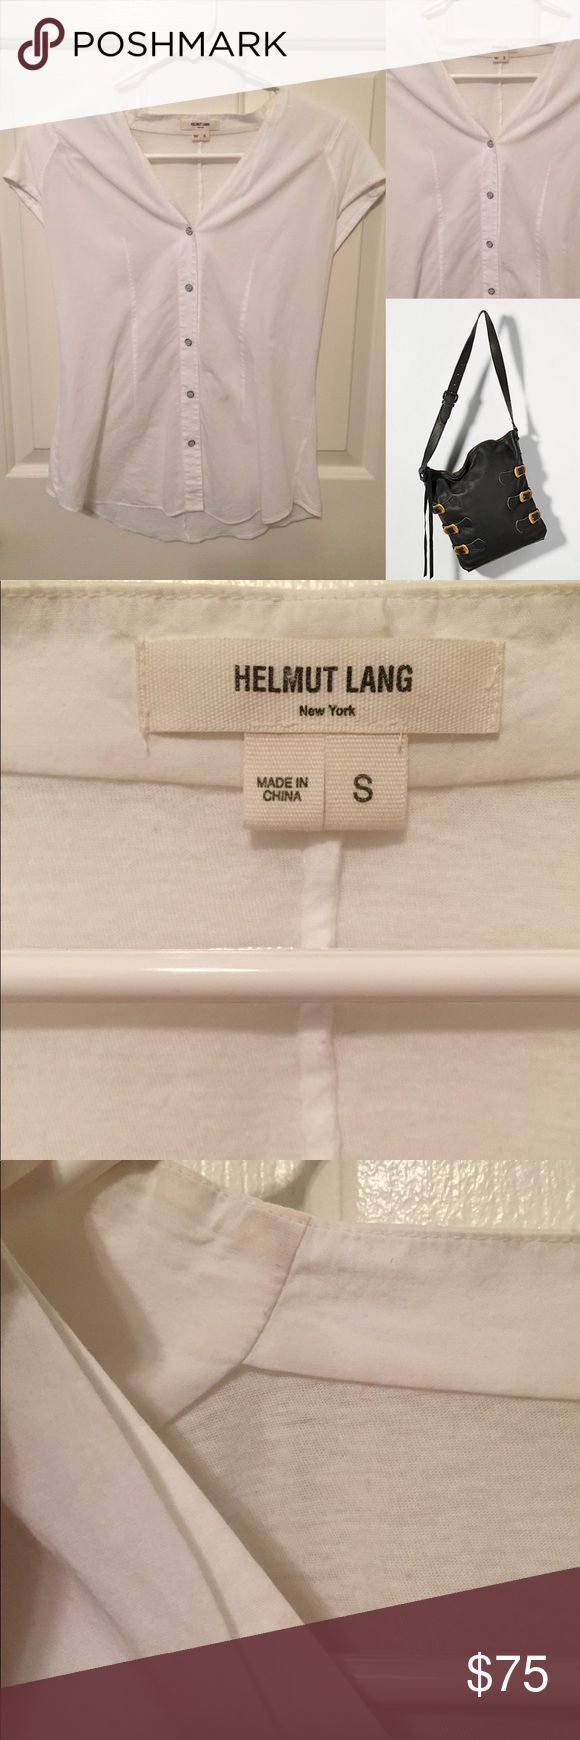 Helmut Lang breezy white button down One small blemish as shown in last photo I have not tried to remove it and it is hardly noticeable. Otherwise in beautiful condition. ❌trades or off-site transactions.I offer a variety of sizes in my closet therefore I do NOT model items.•I will counteroffer with the best value I can offer•I have 2 littles &🚑 an illness that sometimes requires serious medical attention 📬shipping may take a little longer because of my illness but usually I get it out…